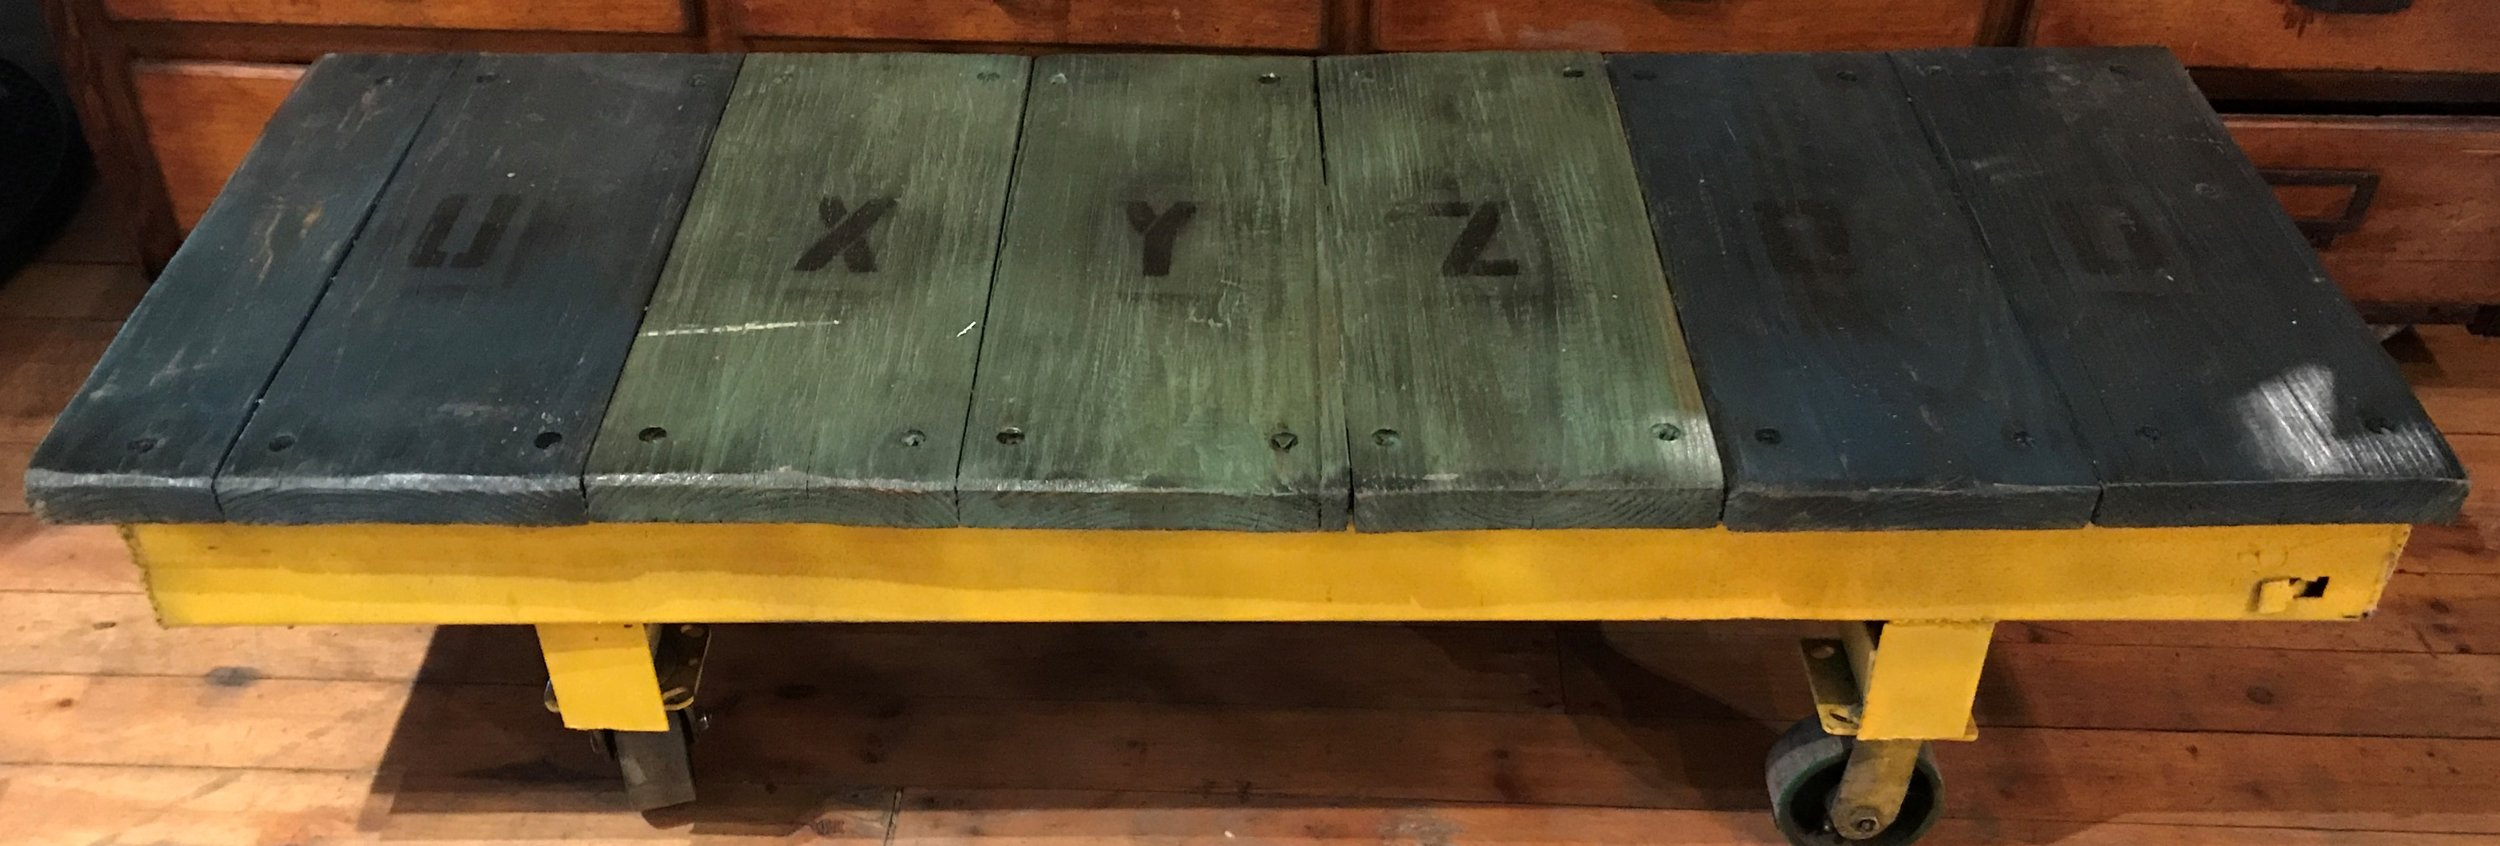 SOLD! Reclaimed Factory Cart Coffee Table